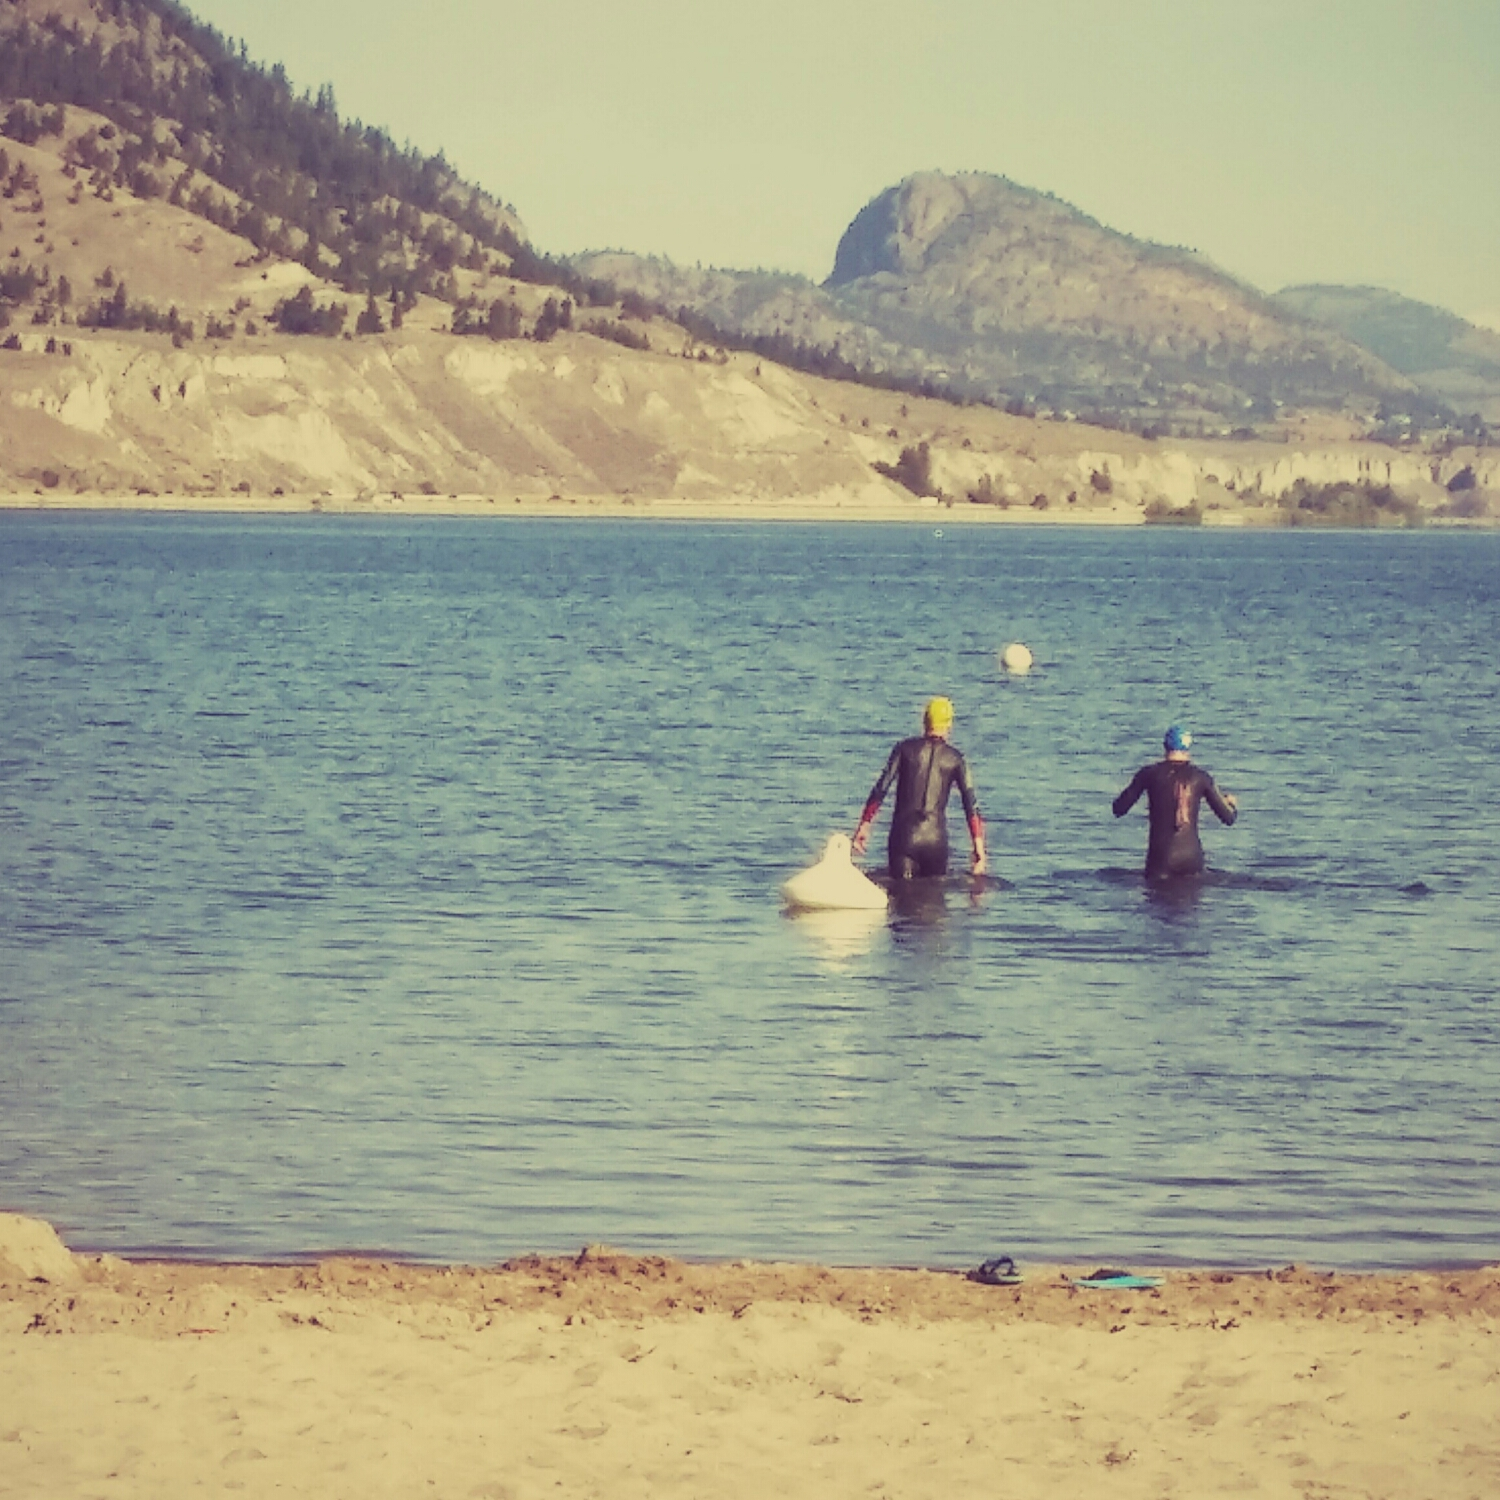 Pre-race swim work with a World Champ medallist.  Penticton, British Columbia.